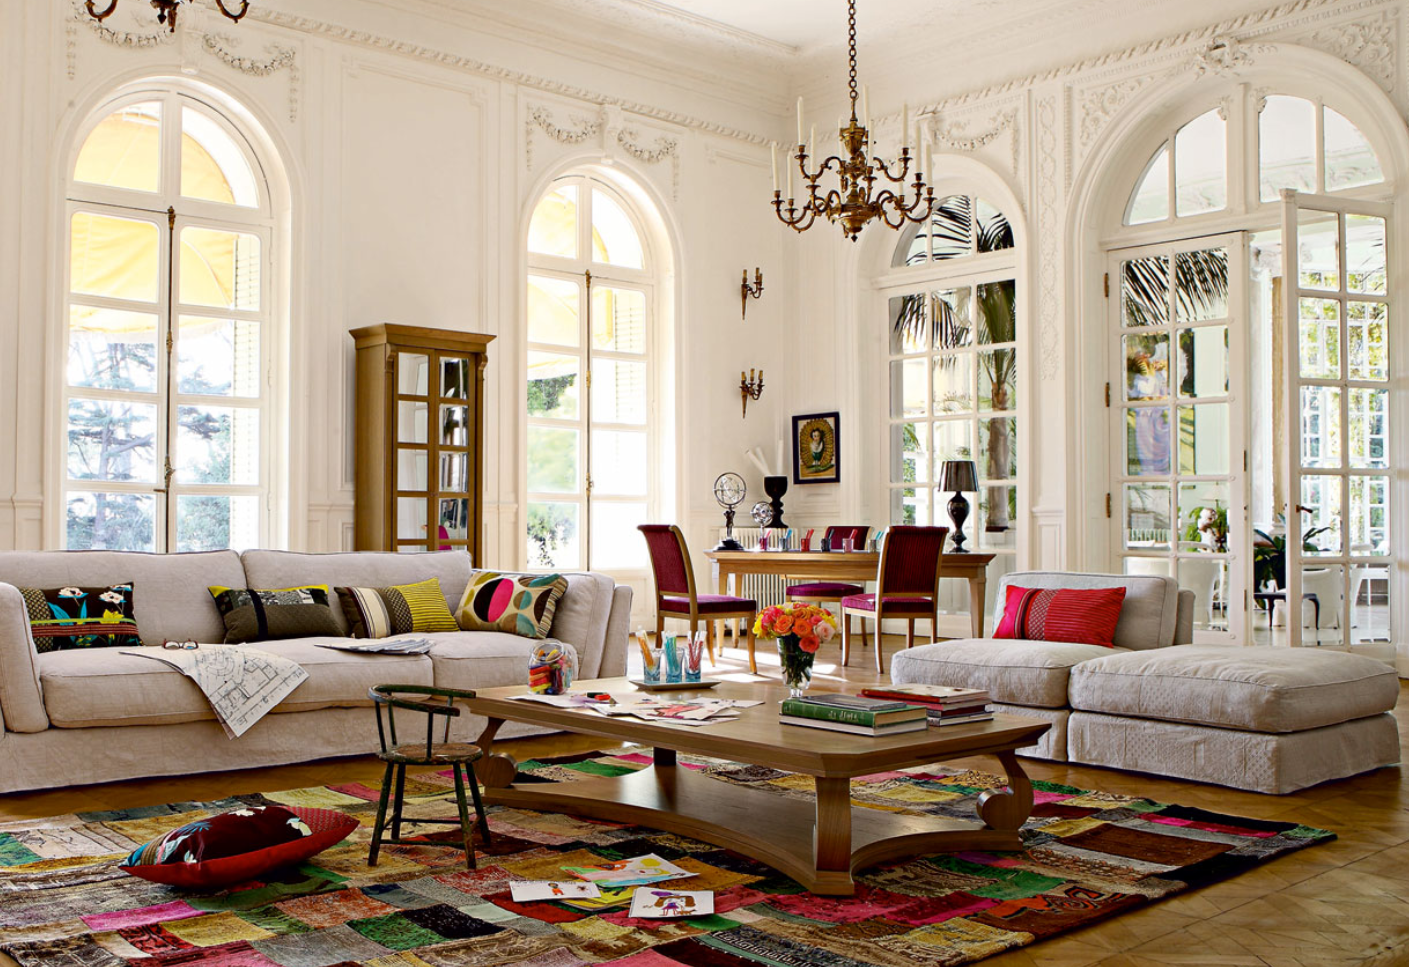 Rooms: Rooms Bloom: Roche-Bobois